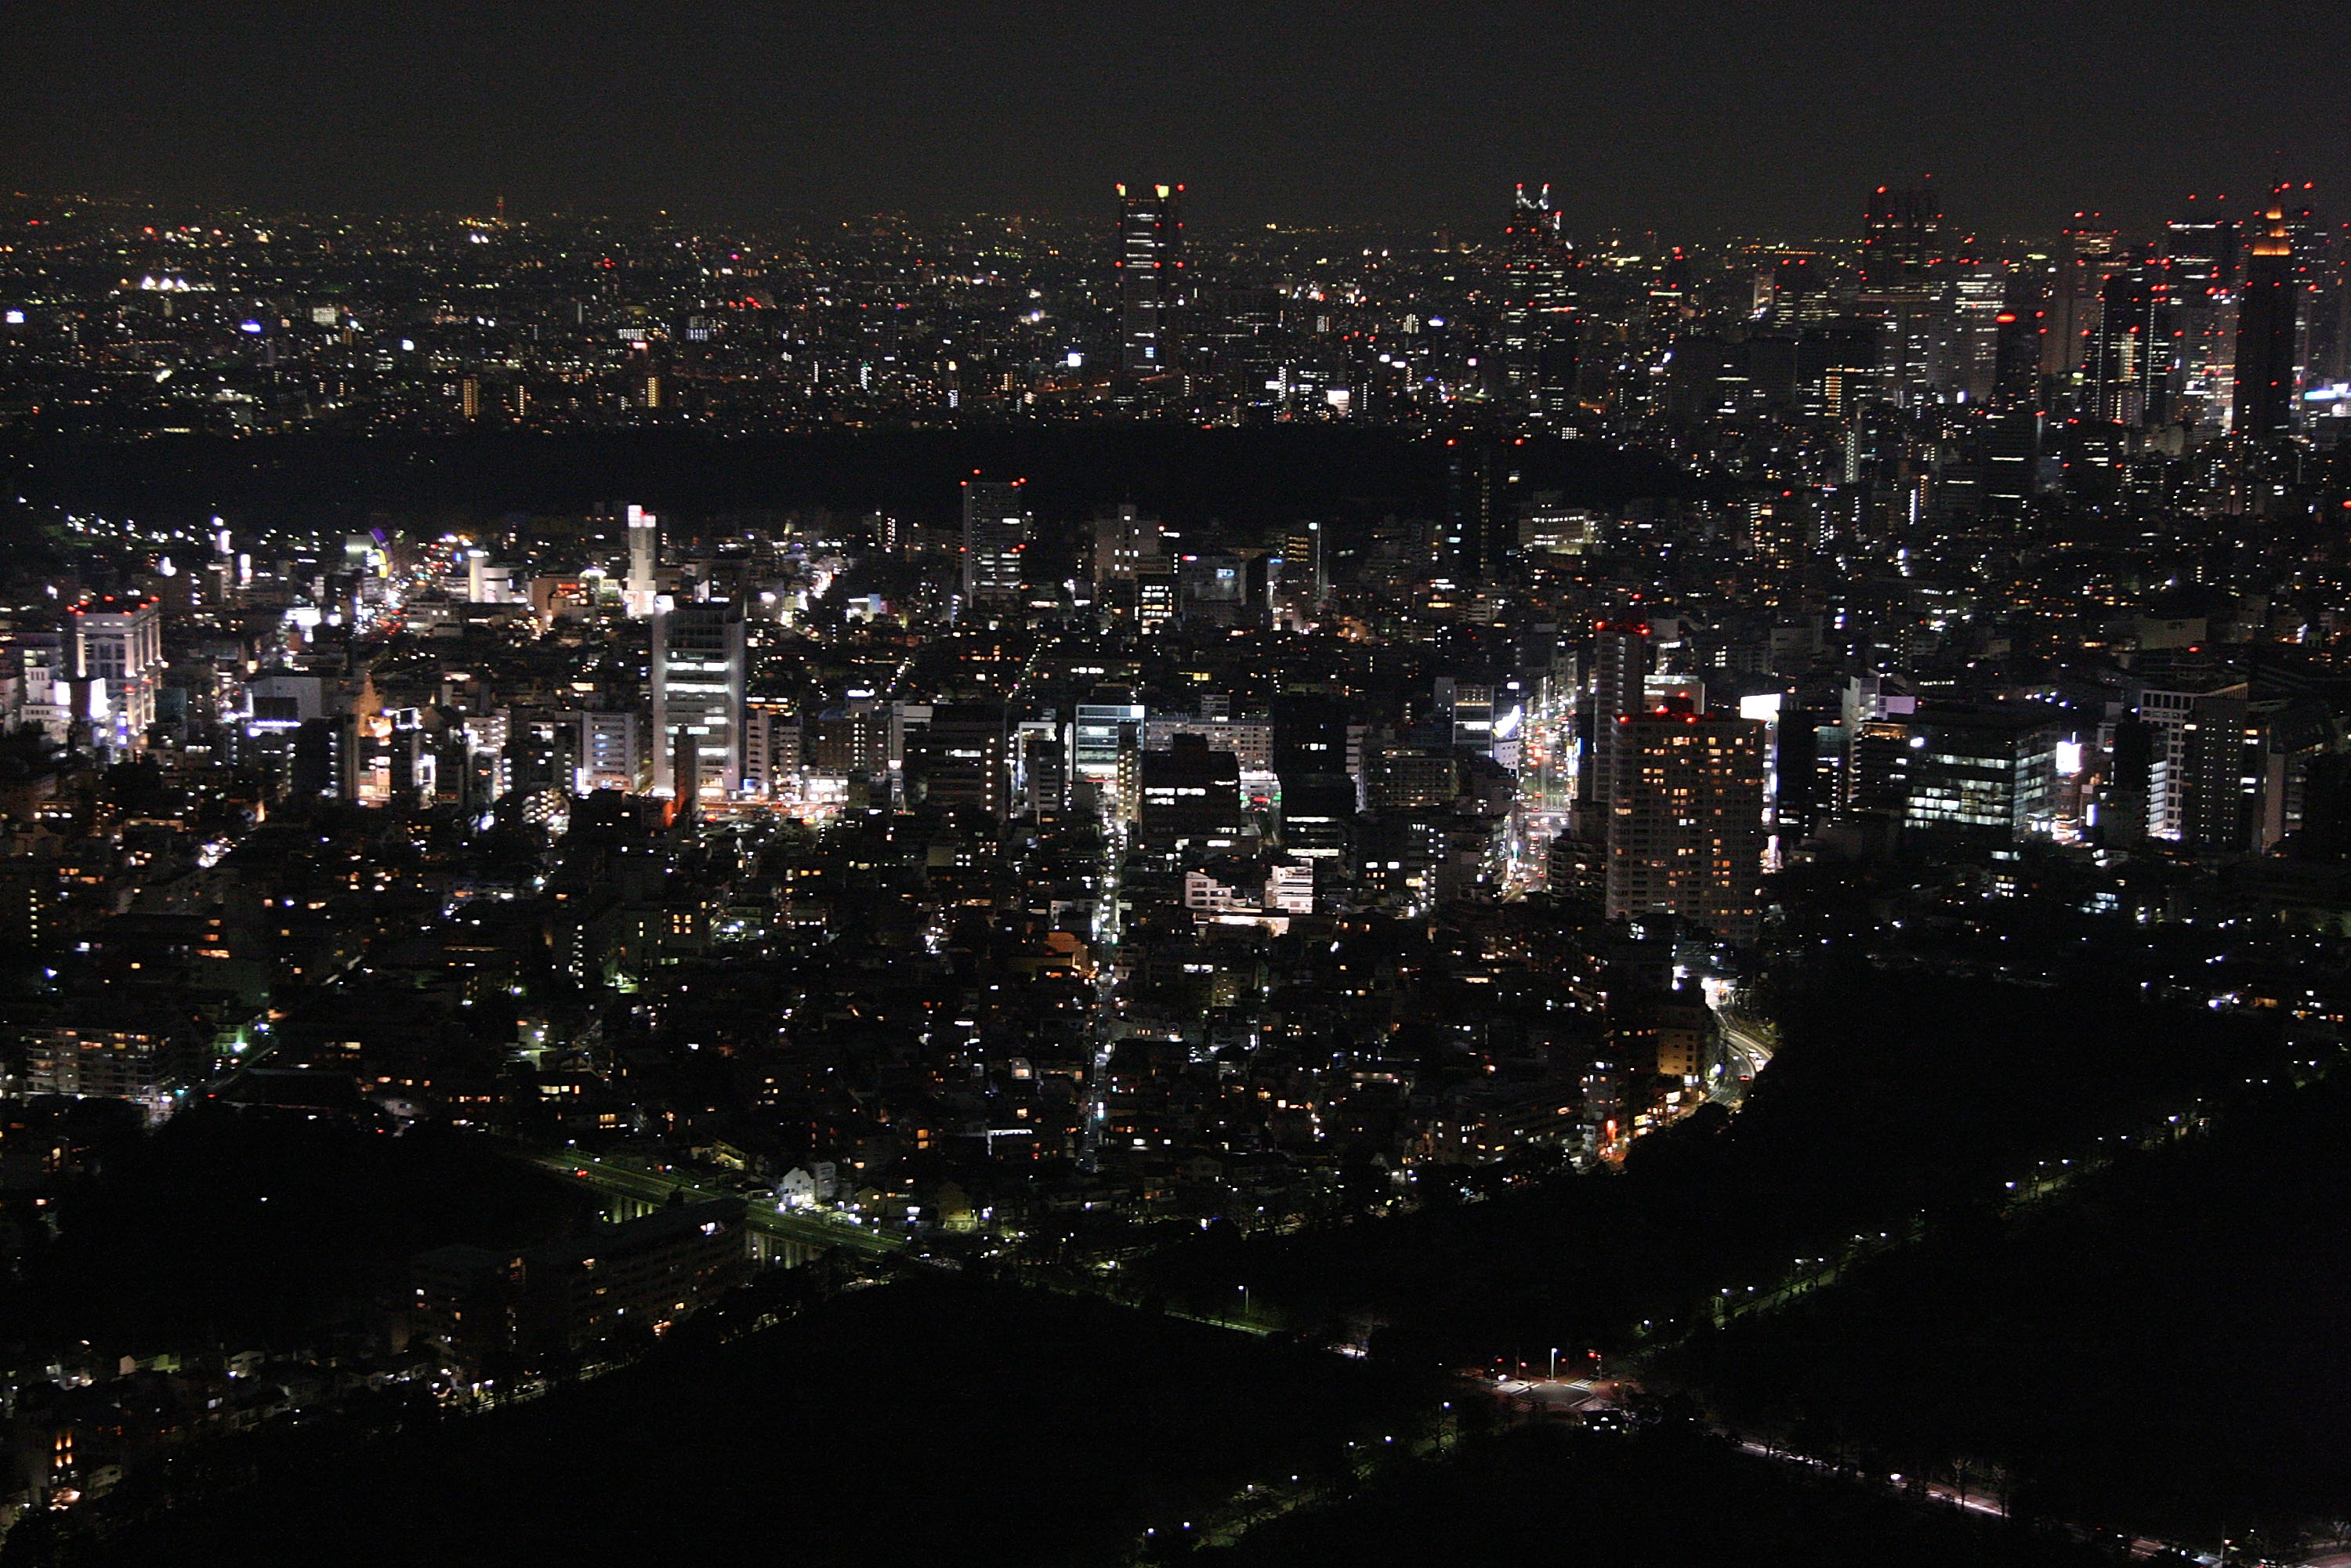 Tokyo may have found the solution to soaring housing costs